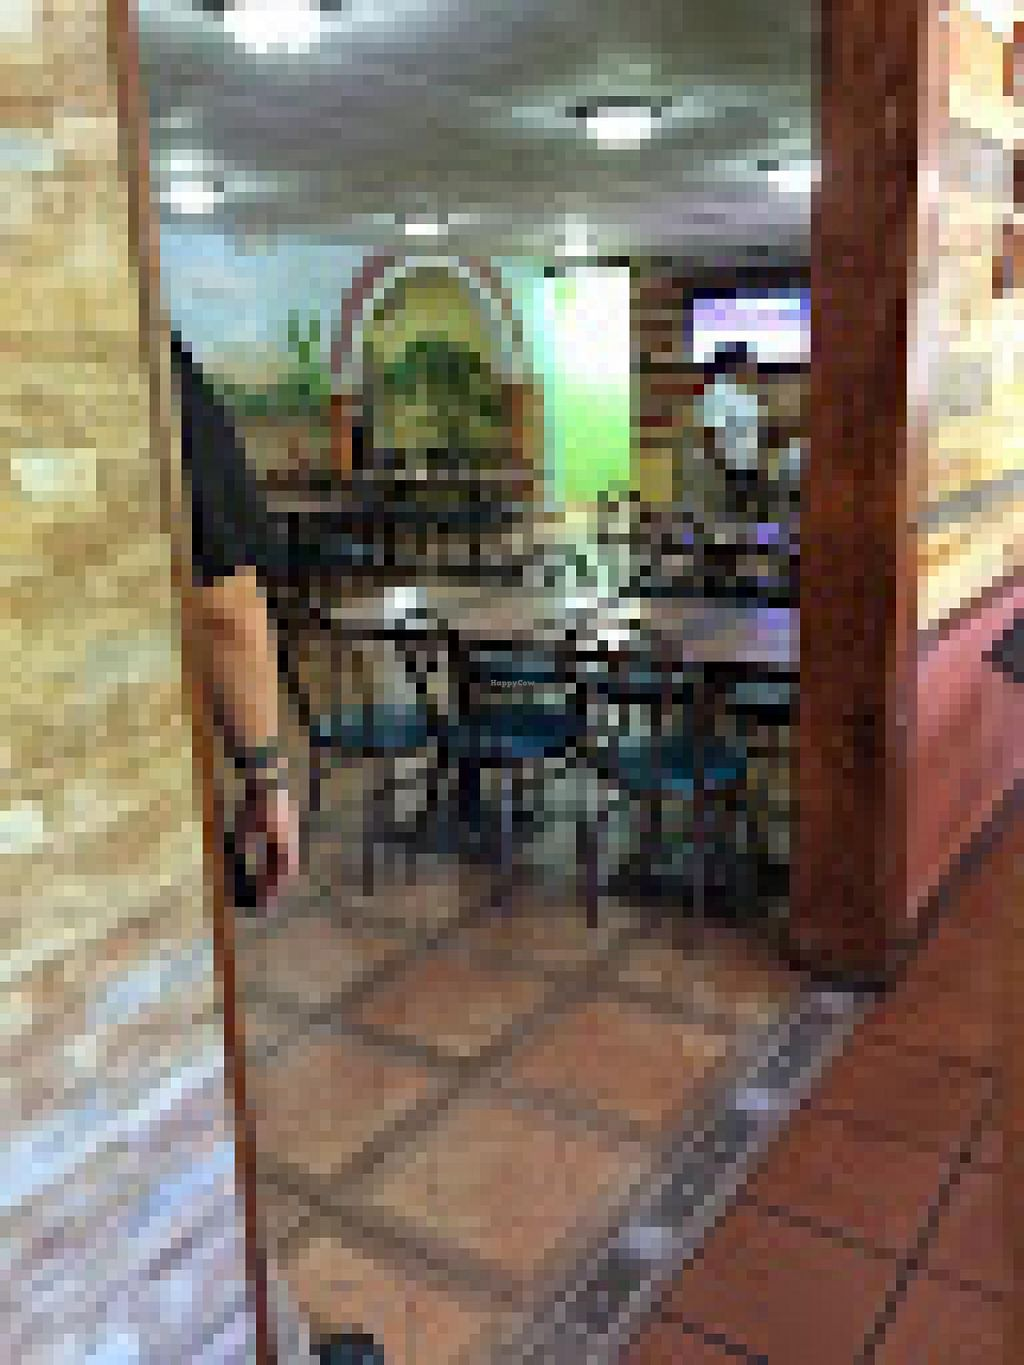 """Photo of Lolita's Mexican Restaurant  by <a href=""""/members/profile/Tamilyn"""">Tamilyn</a> <br/>Inside <br/> August 10, 2014  - <a href='/contact/abuse/image/20787/76579'>Report</a>"""